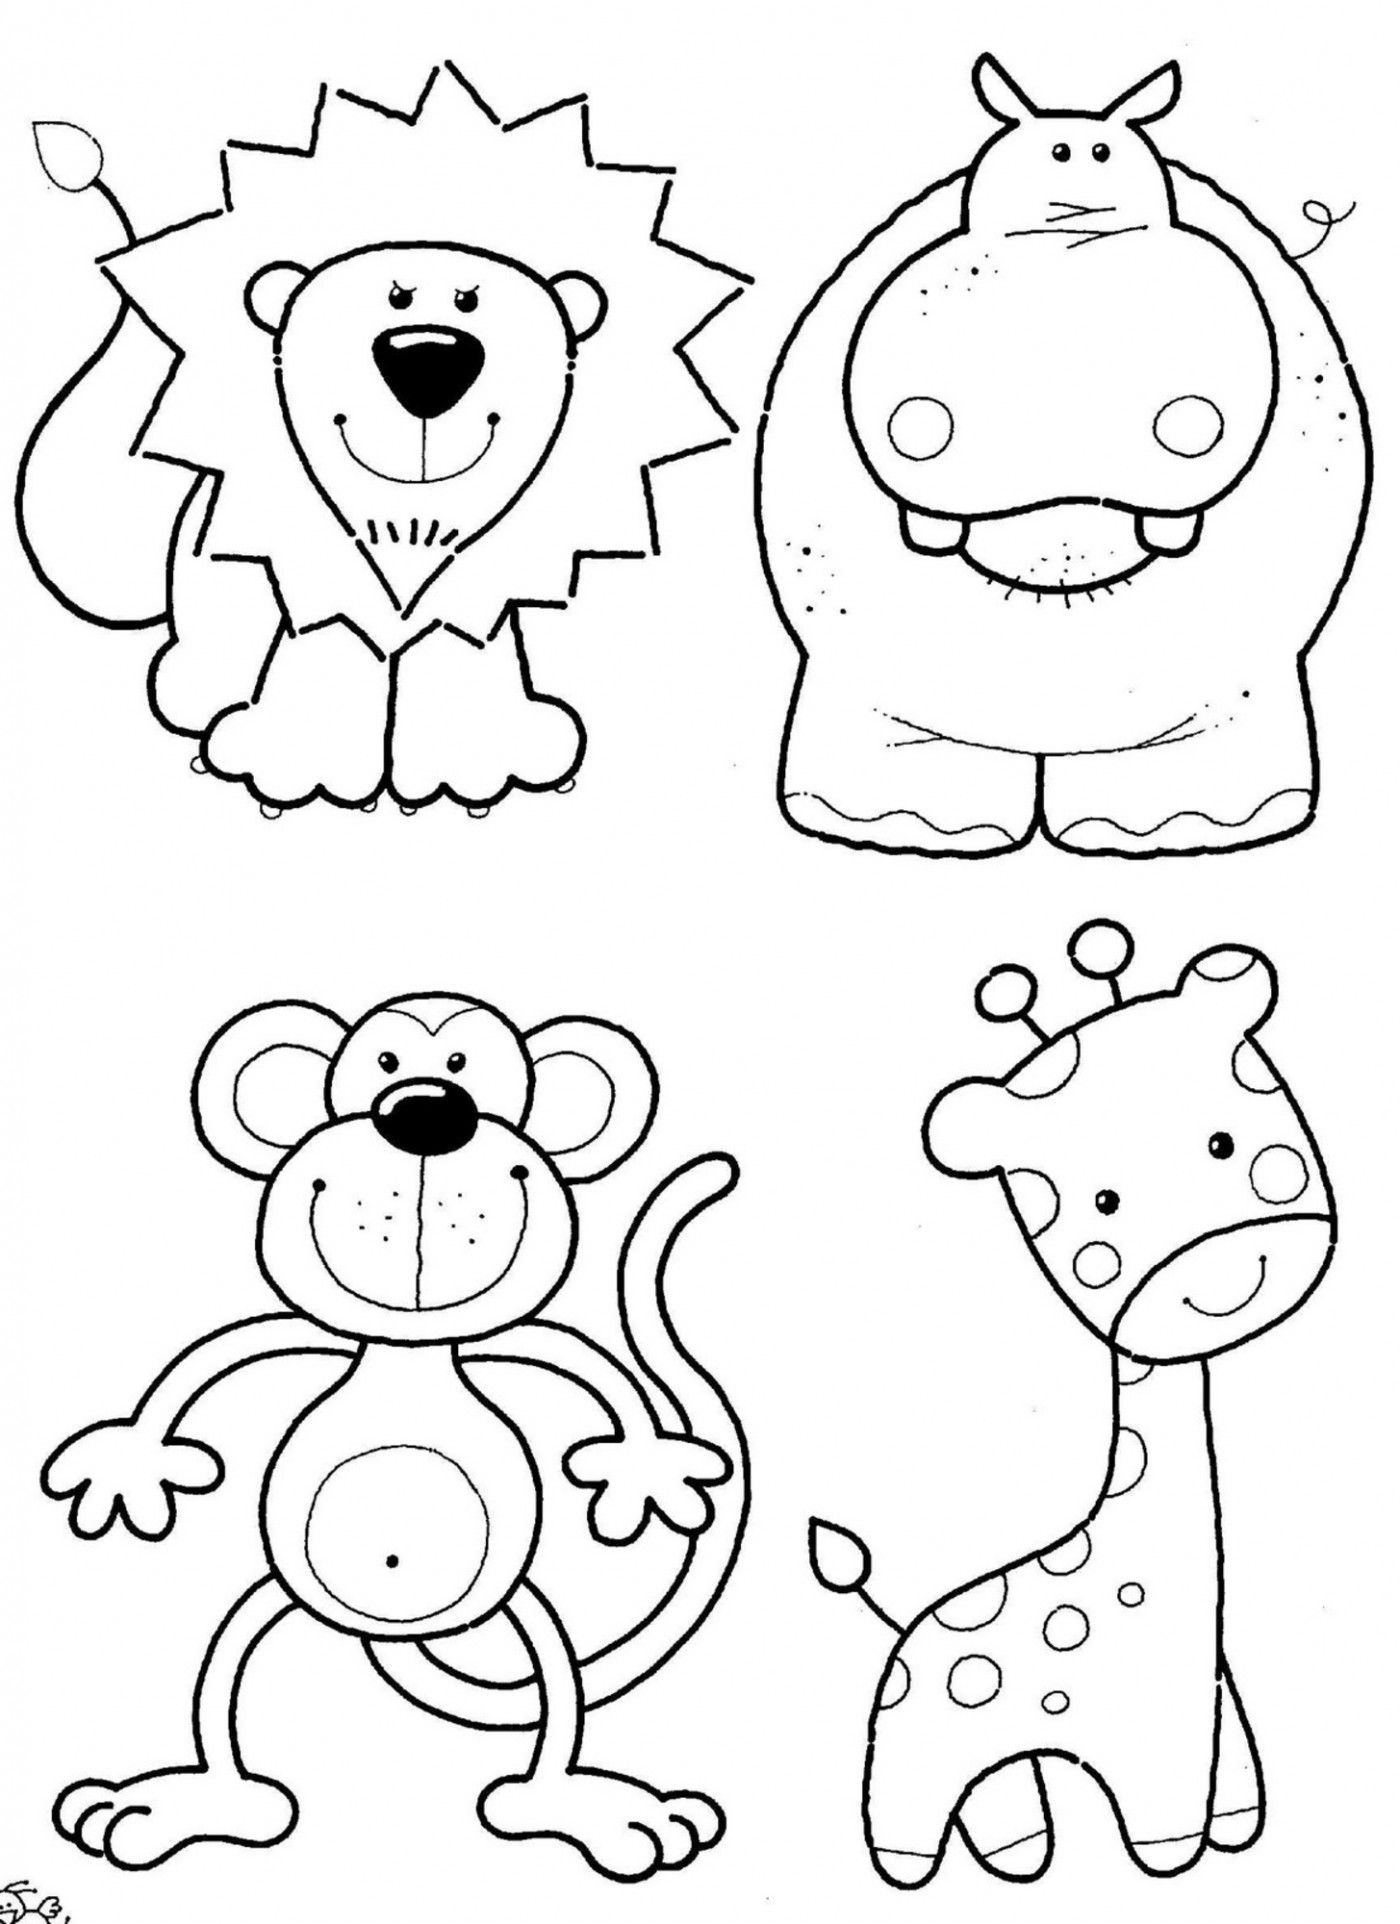 animal coloring pages 14 - Coloring Book Animals